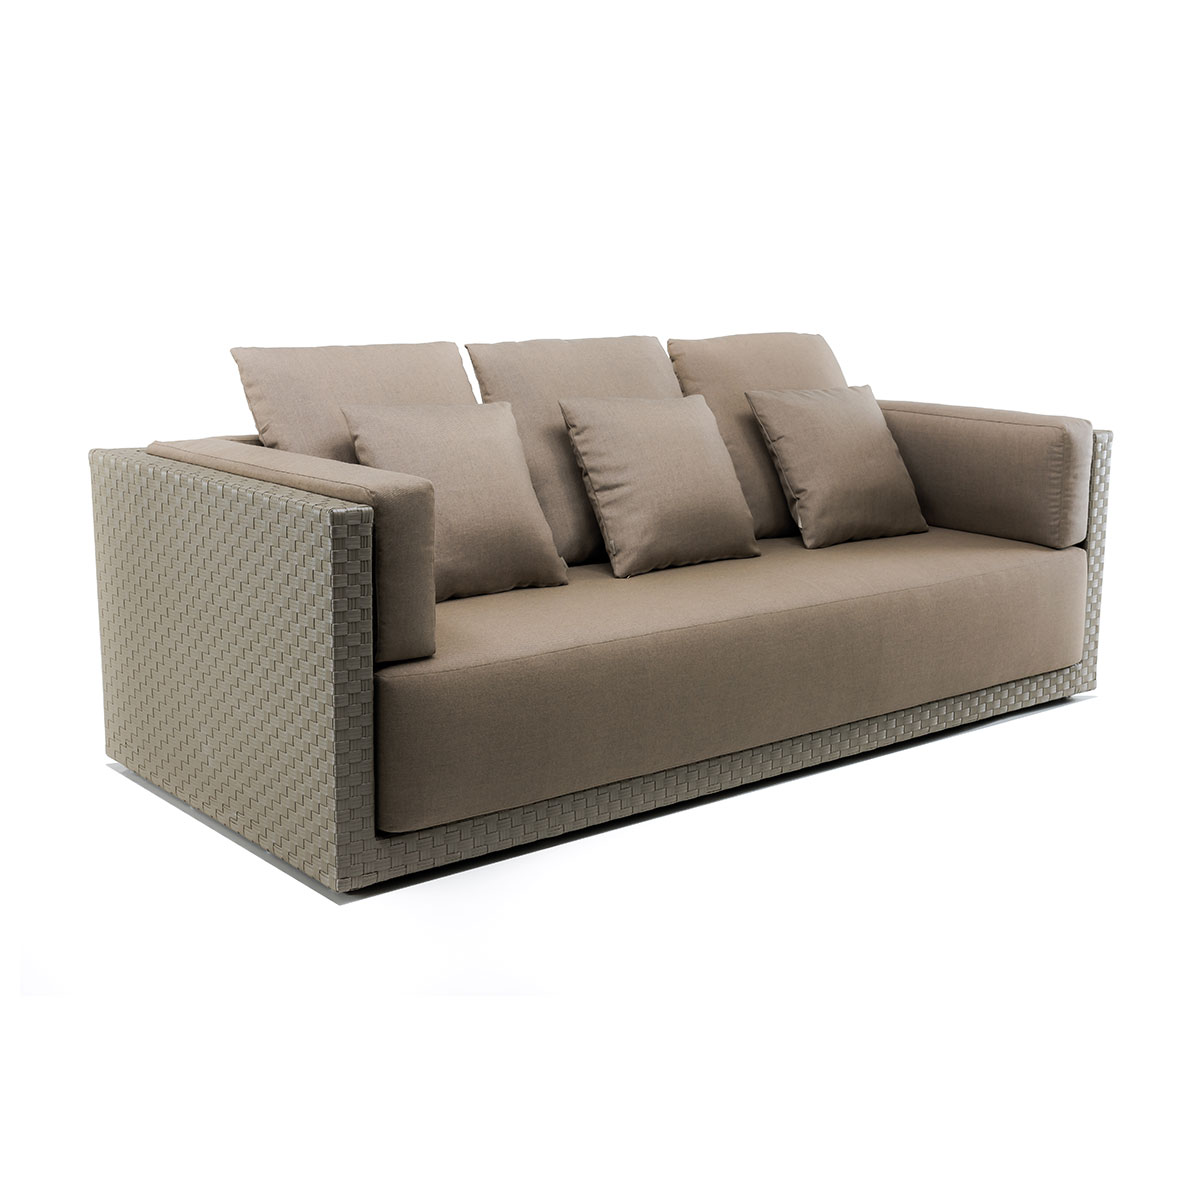 3 seated sofa Zoe Braid